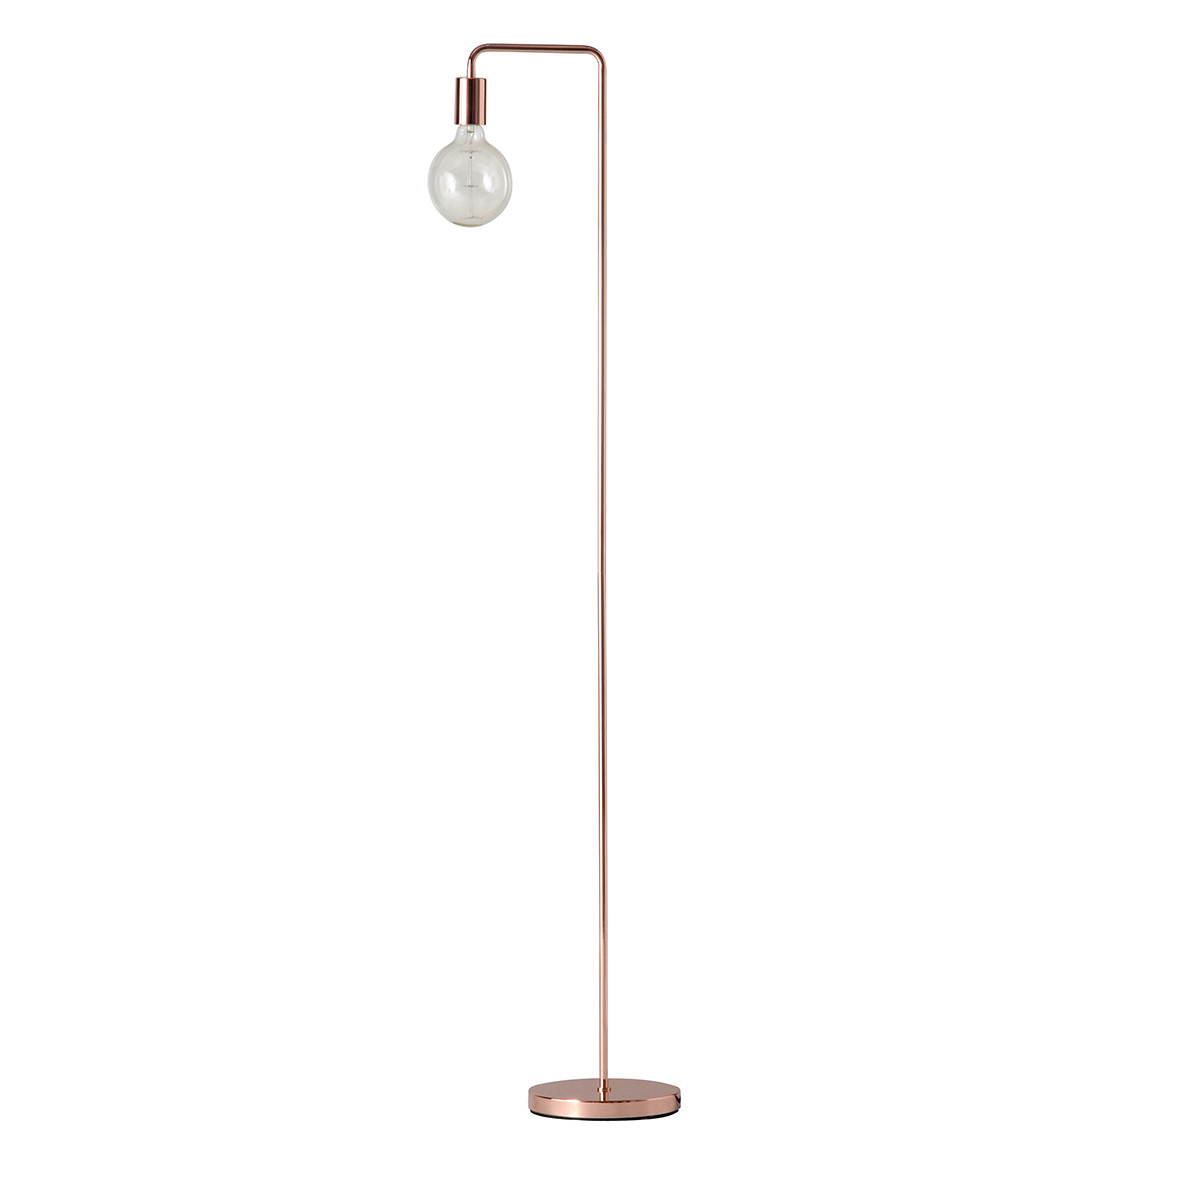 Lampadar Cool Copper title=Lampadar Cool Copper